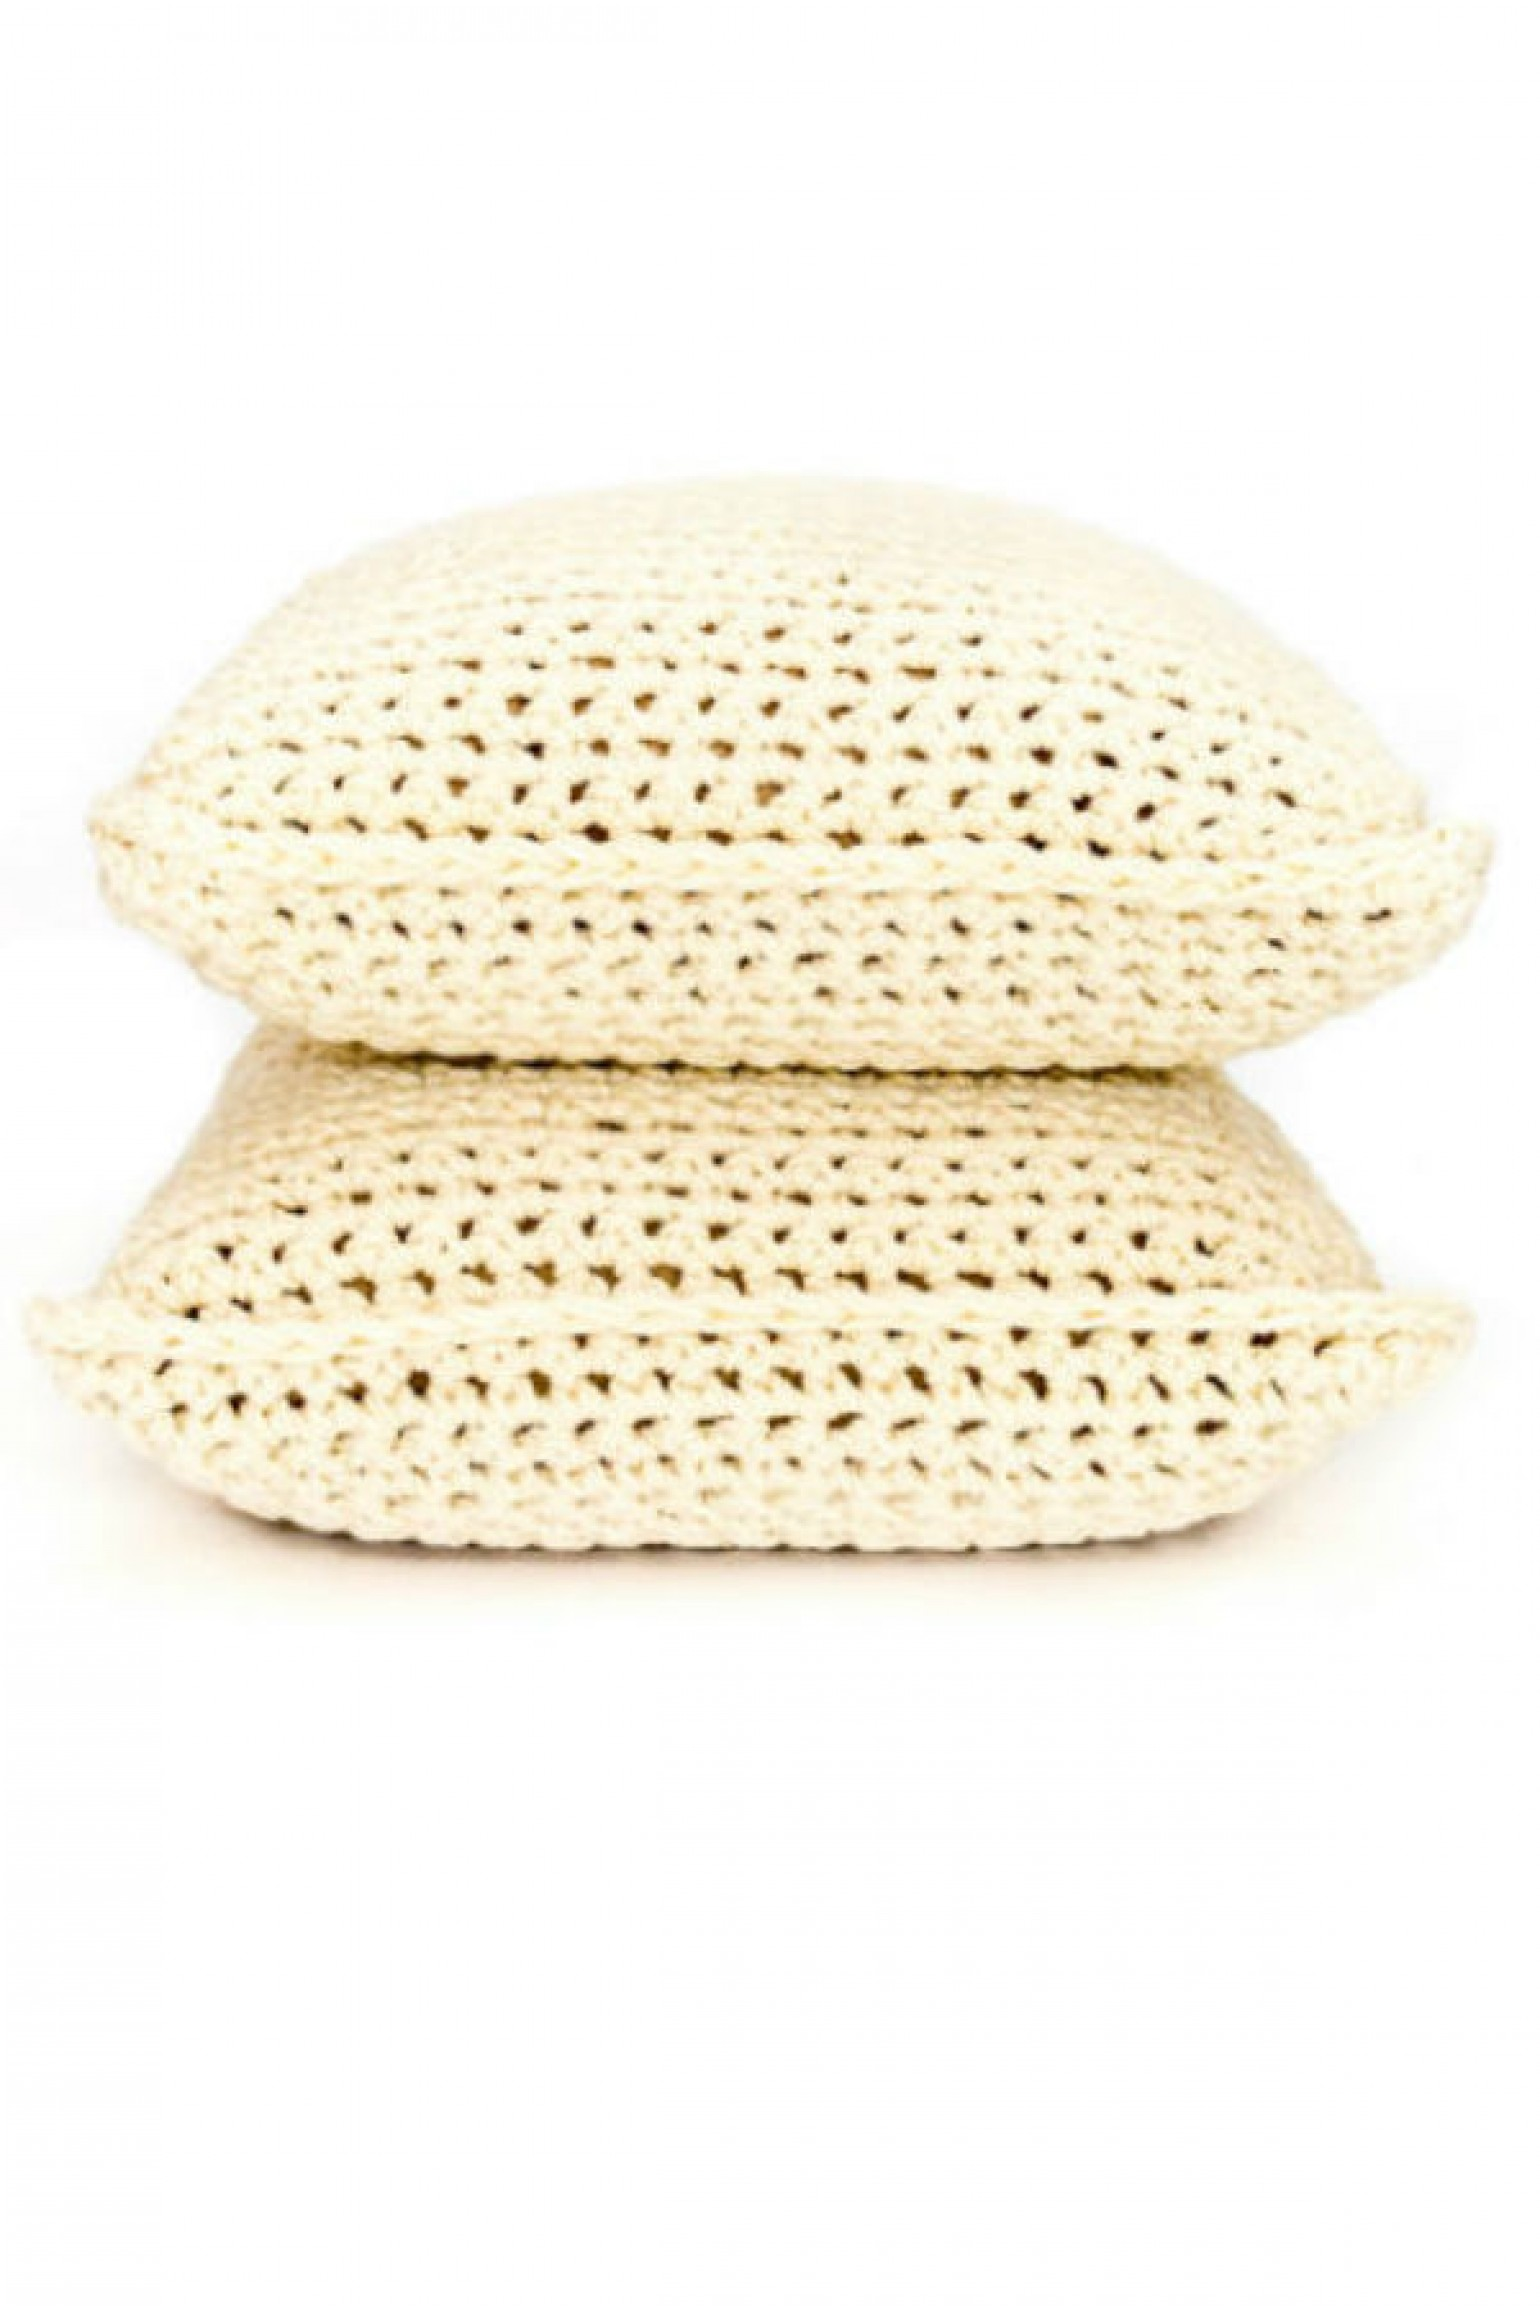 Crochet Boho Cushion